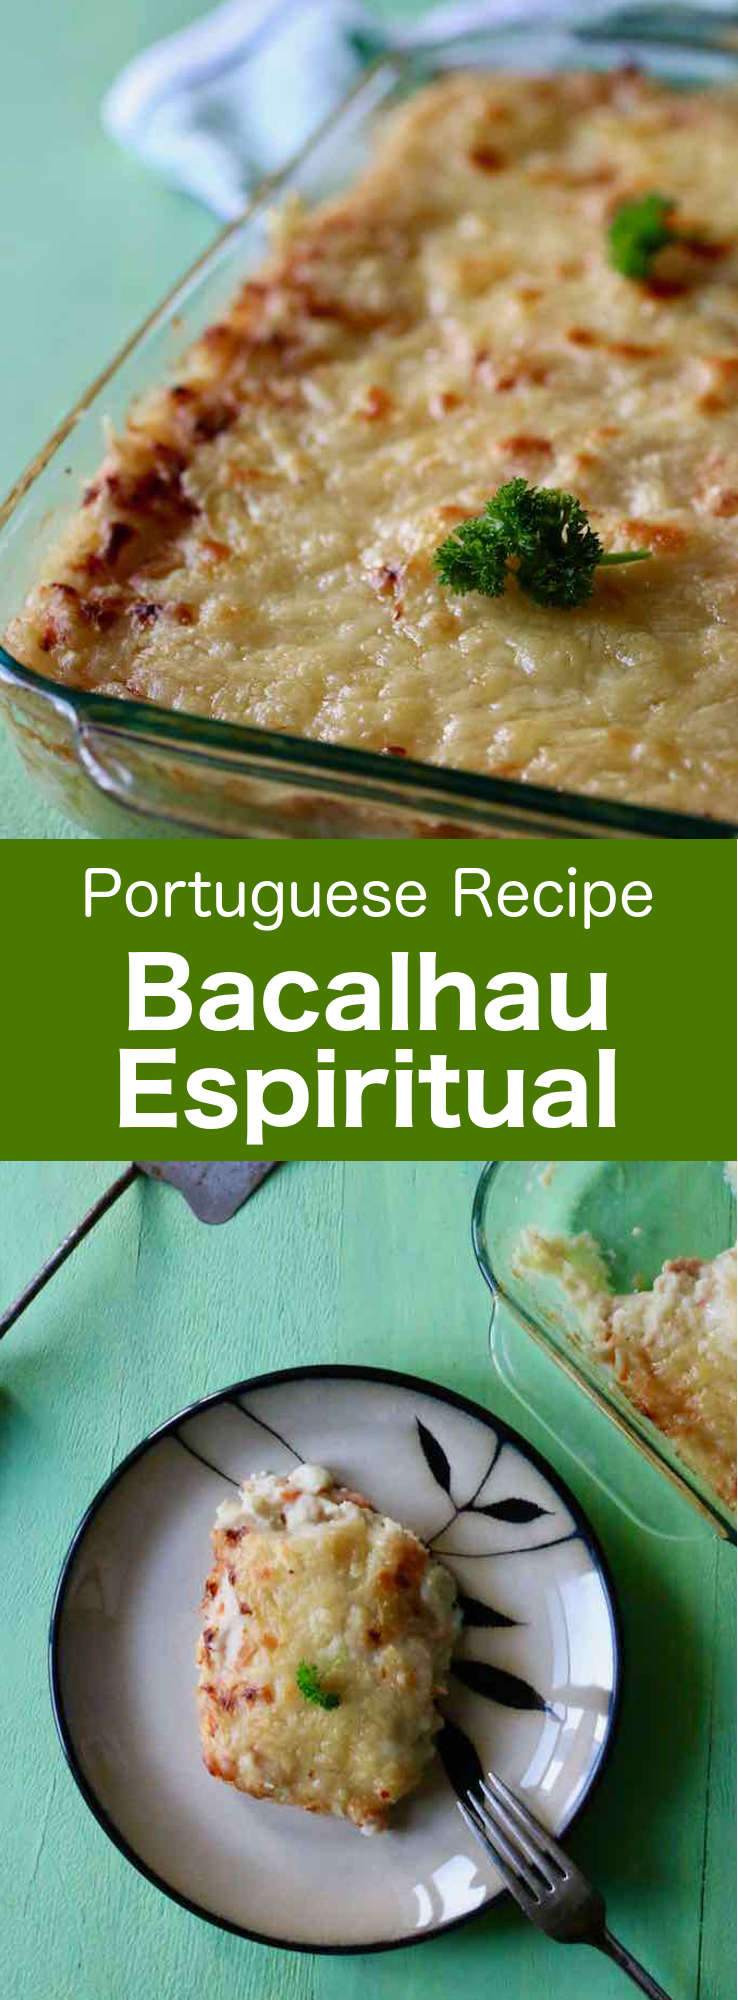 Bacalhau espiritual is a comforting Portuguese casserole prepared with salt cod, bread, Bechamel sauce and topped with cheese that is melted and broiled to perfection. #Portugal #PortugueseRecipe #bacalhau #BacalhauRecipe #WorldCuisine #196flavors